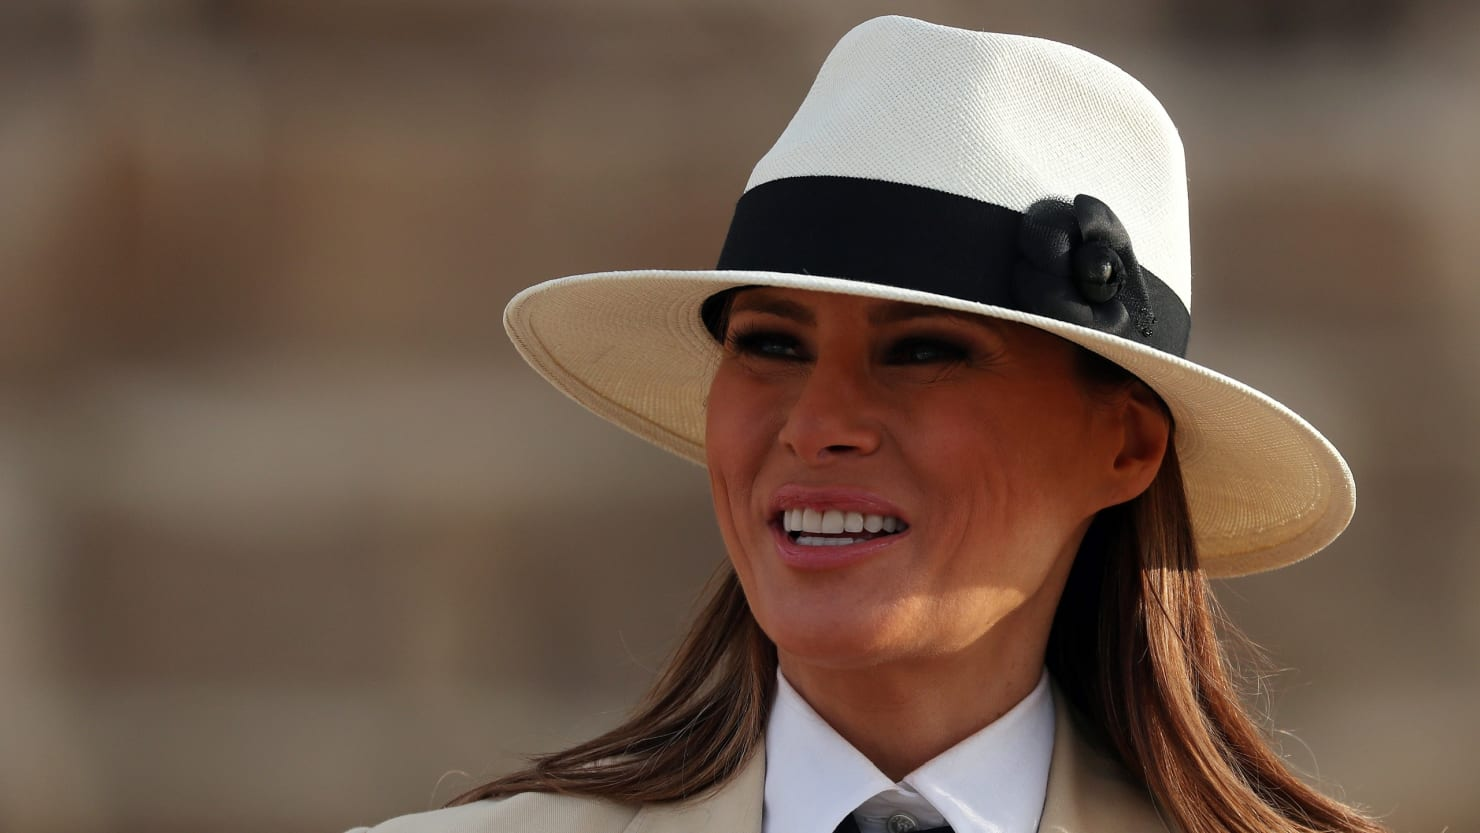 Melania Trump: I Was 'Blindsided' by 'Unacceptable' Family ...